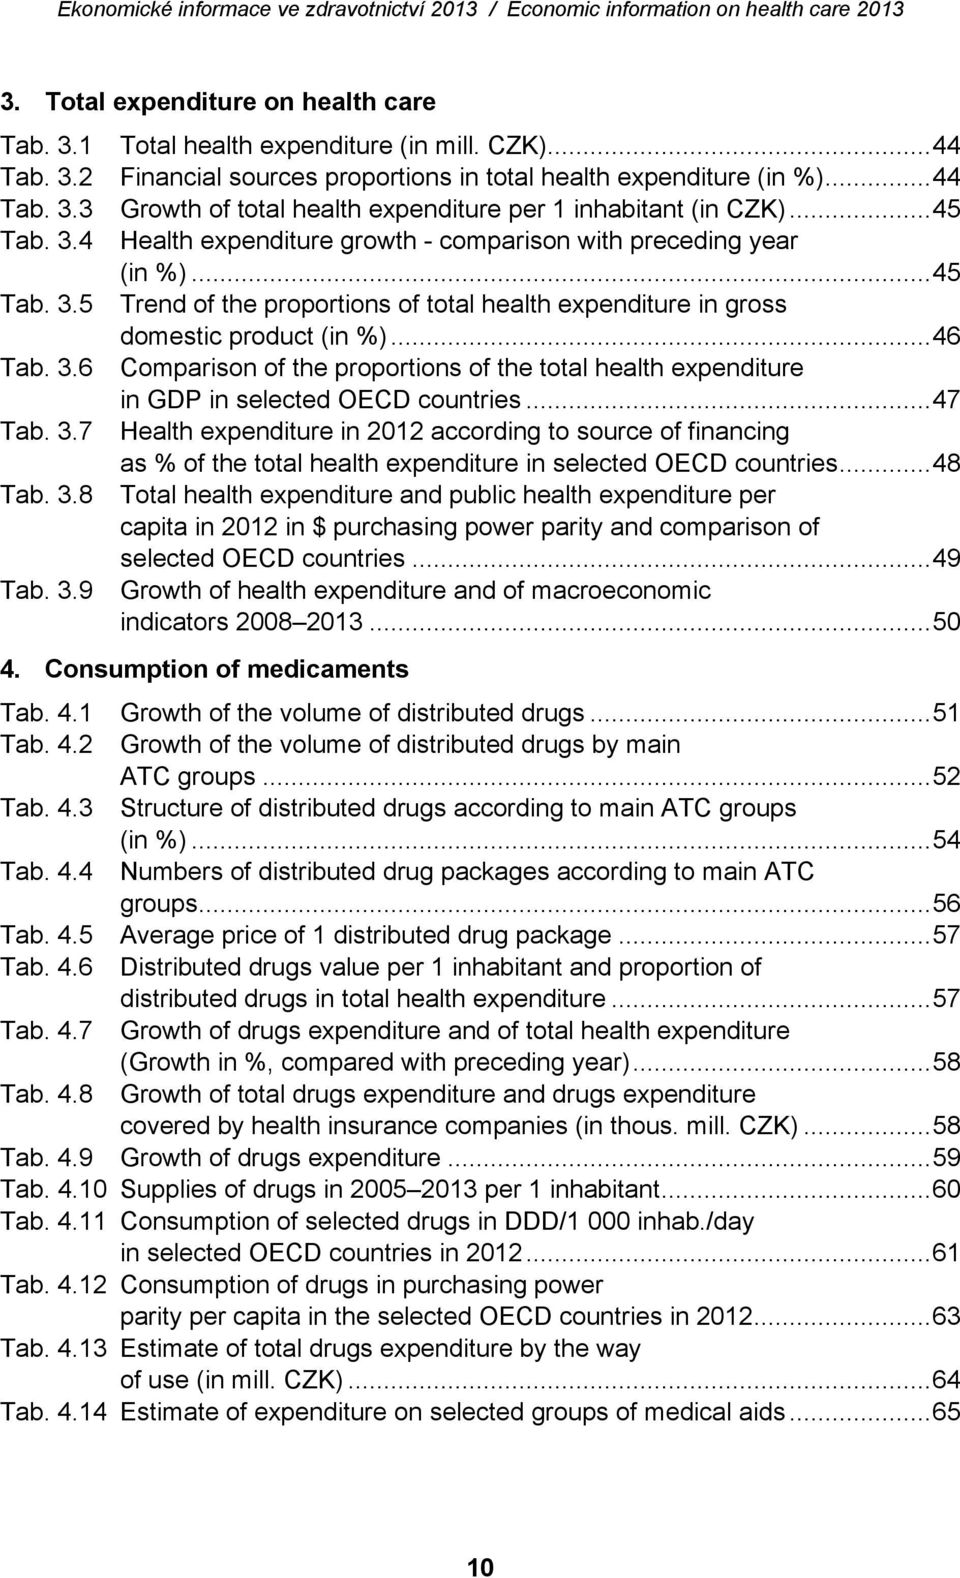 .. 47 Tab. 3.7 Health expenditure in 2012 according to source of financing as % of the total health expenditure in selected OECD countries... 48 Tab. 3.8 Total health expenditure and public health expenditure per capita in 2012 in $ purchasing power parity and comparison of selected OECD countries.